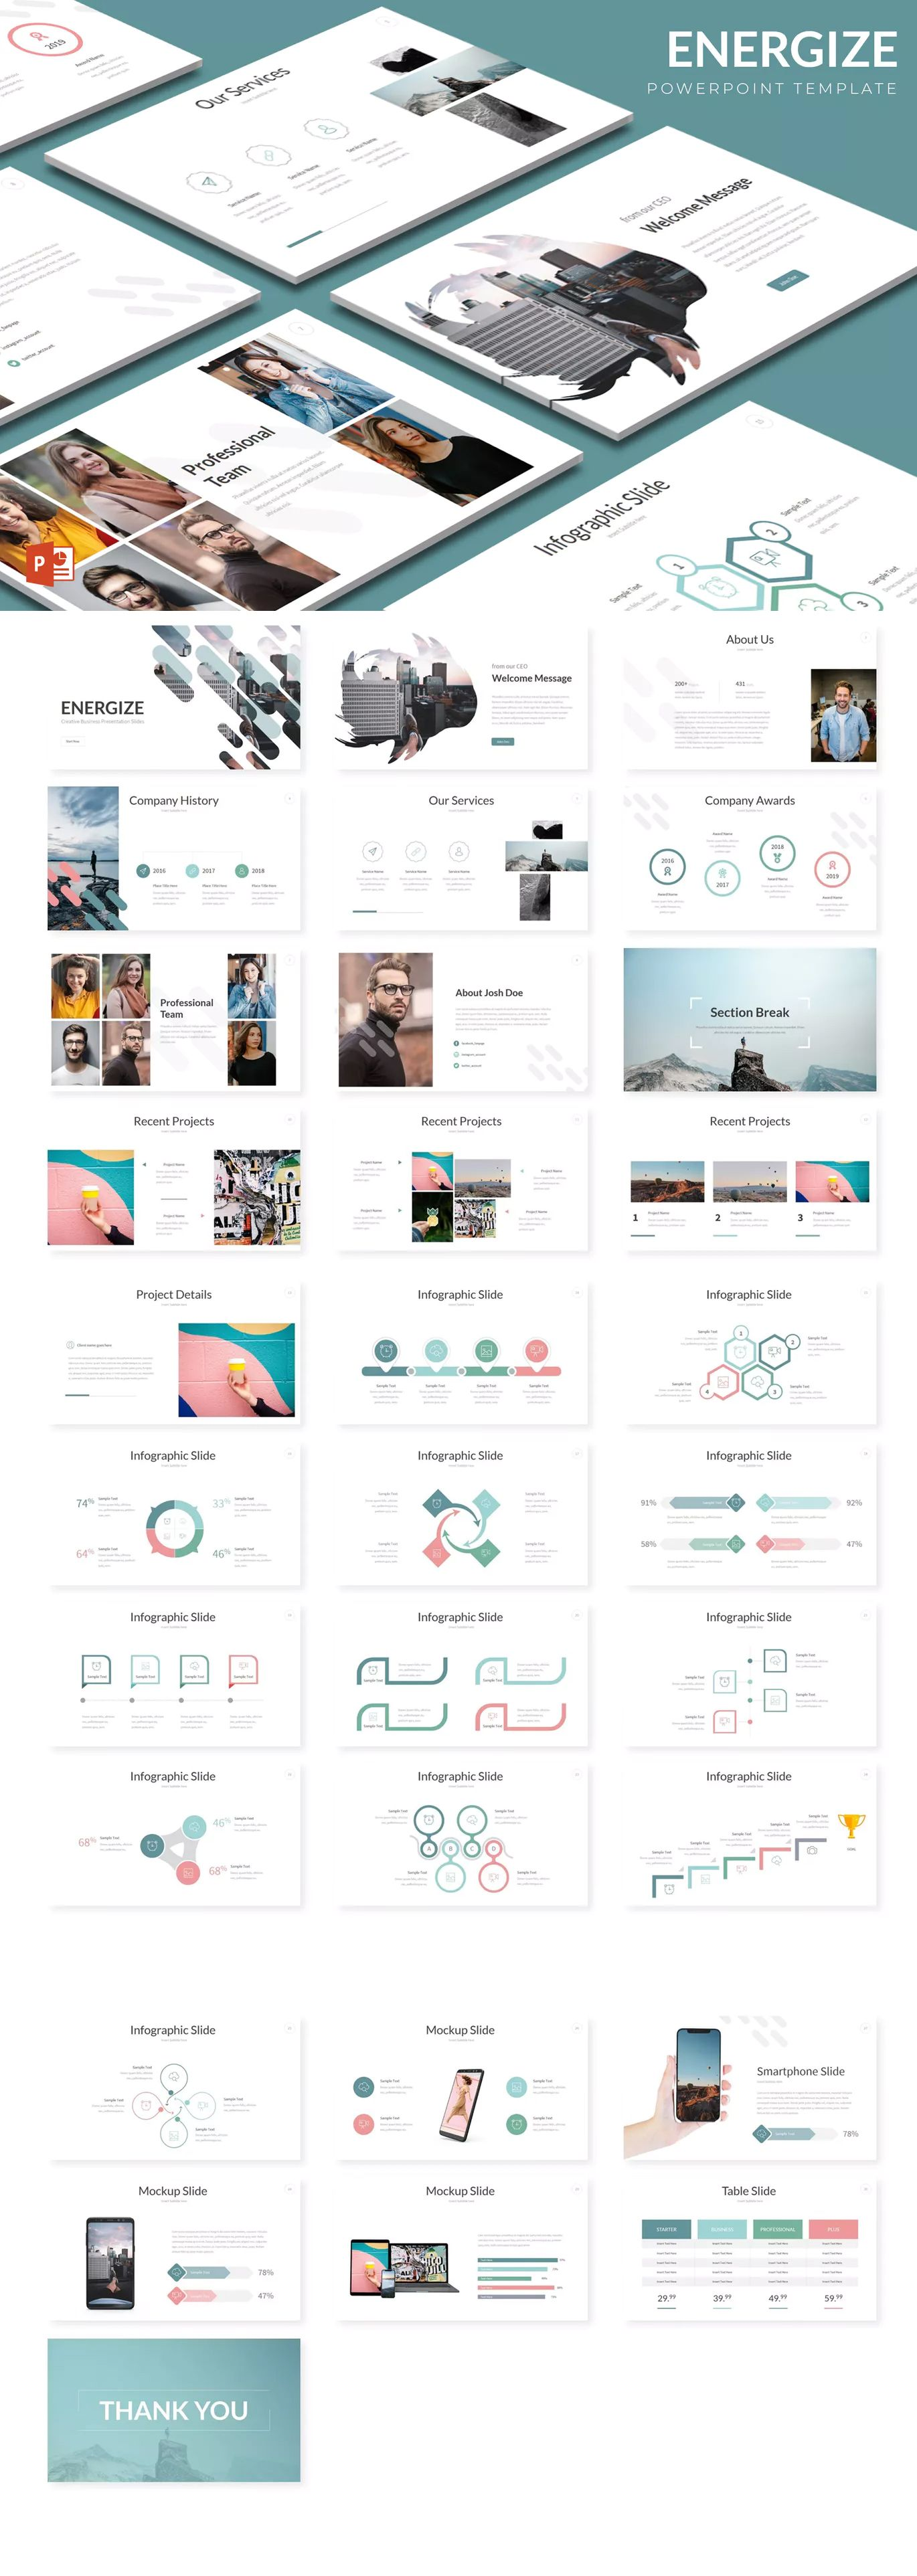 energize powerpoint presentation templates 150 total slides on